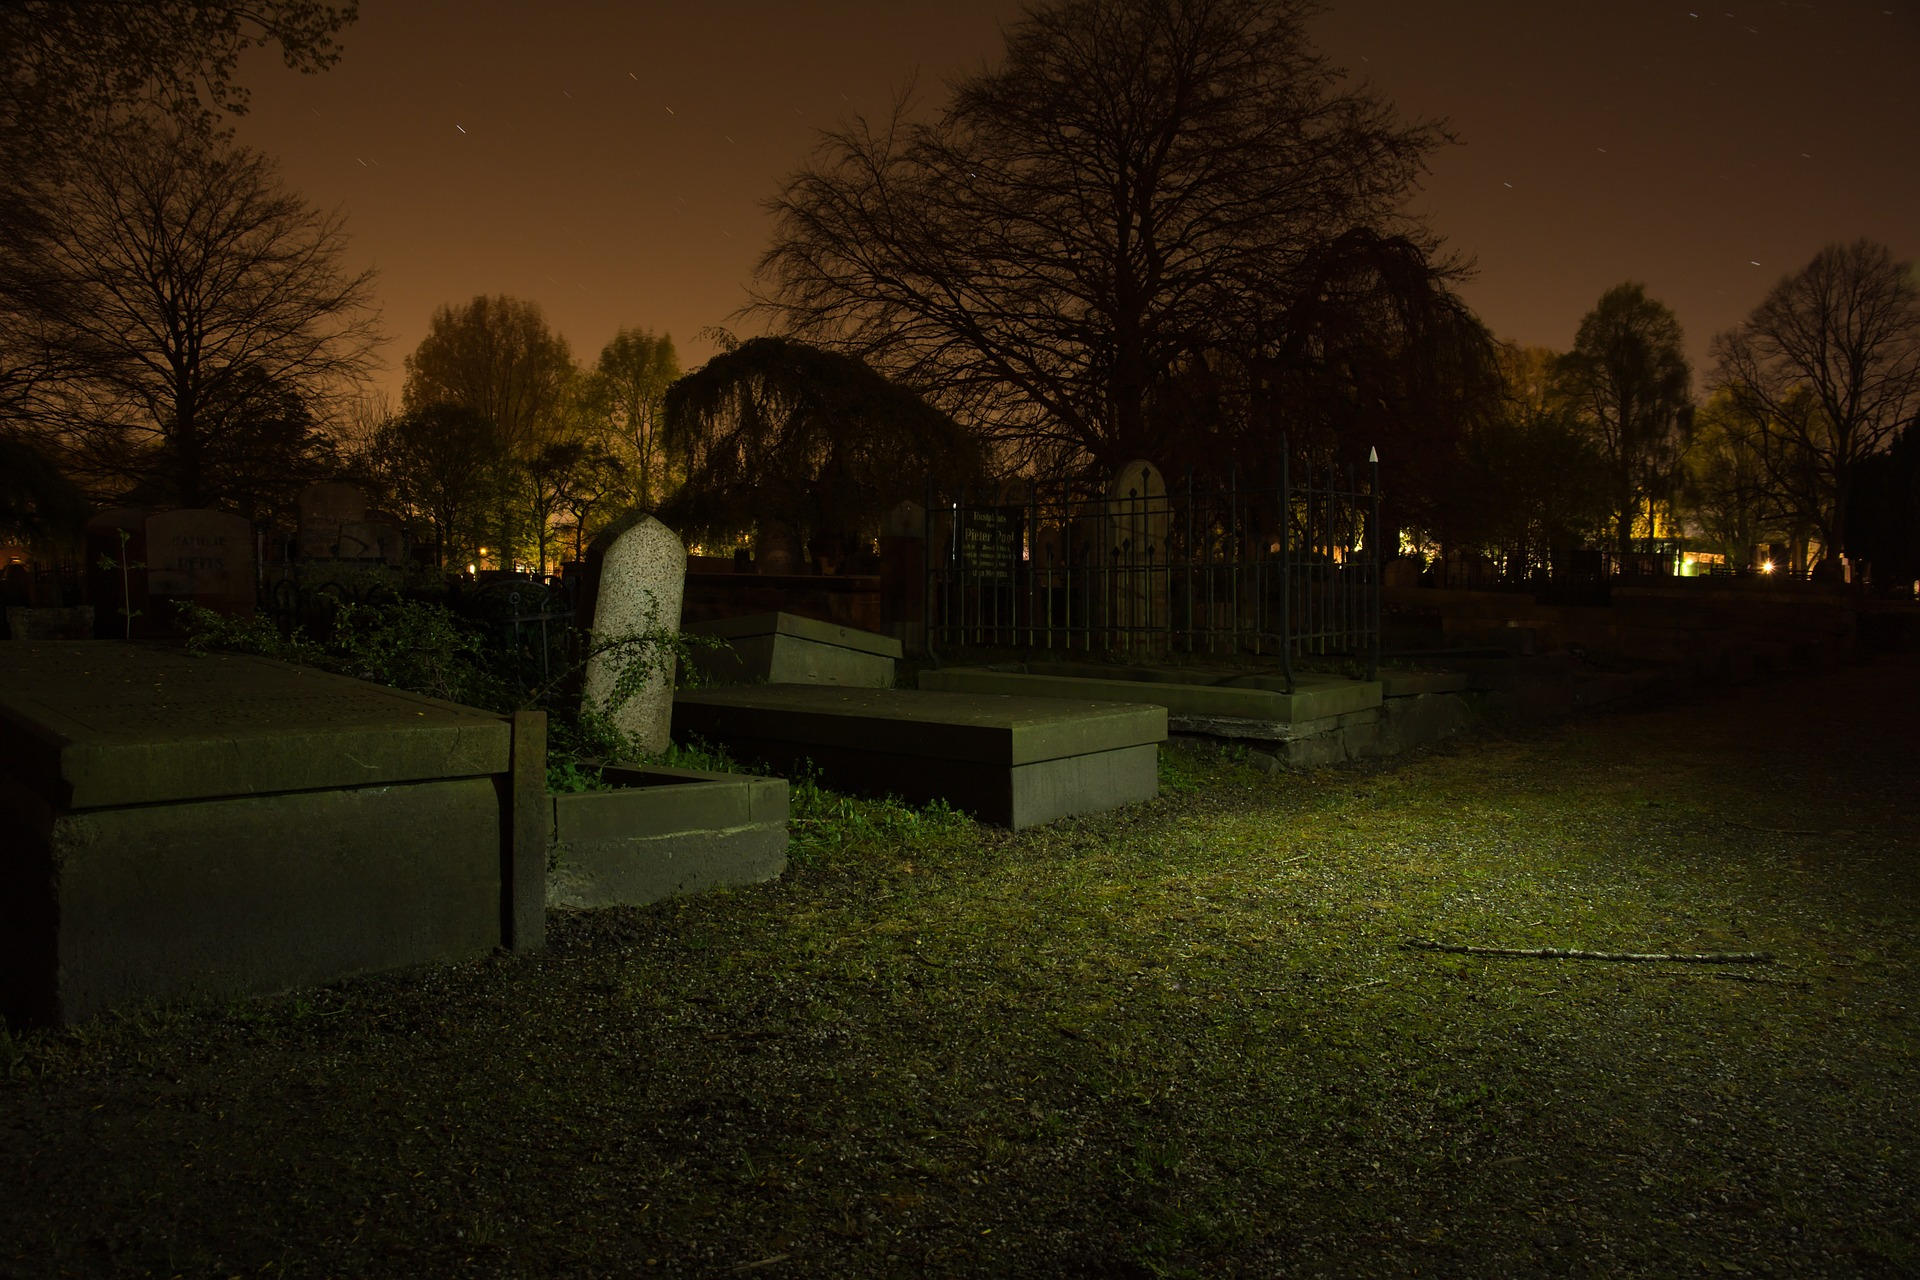 Graveyard in the city photo